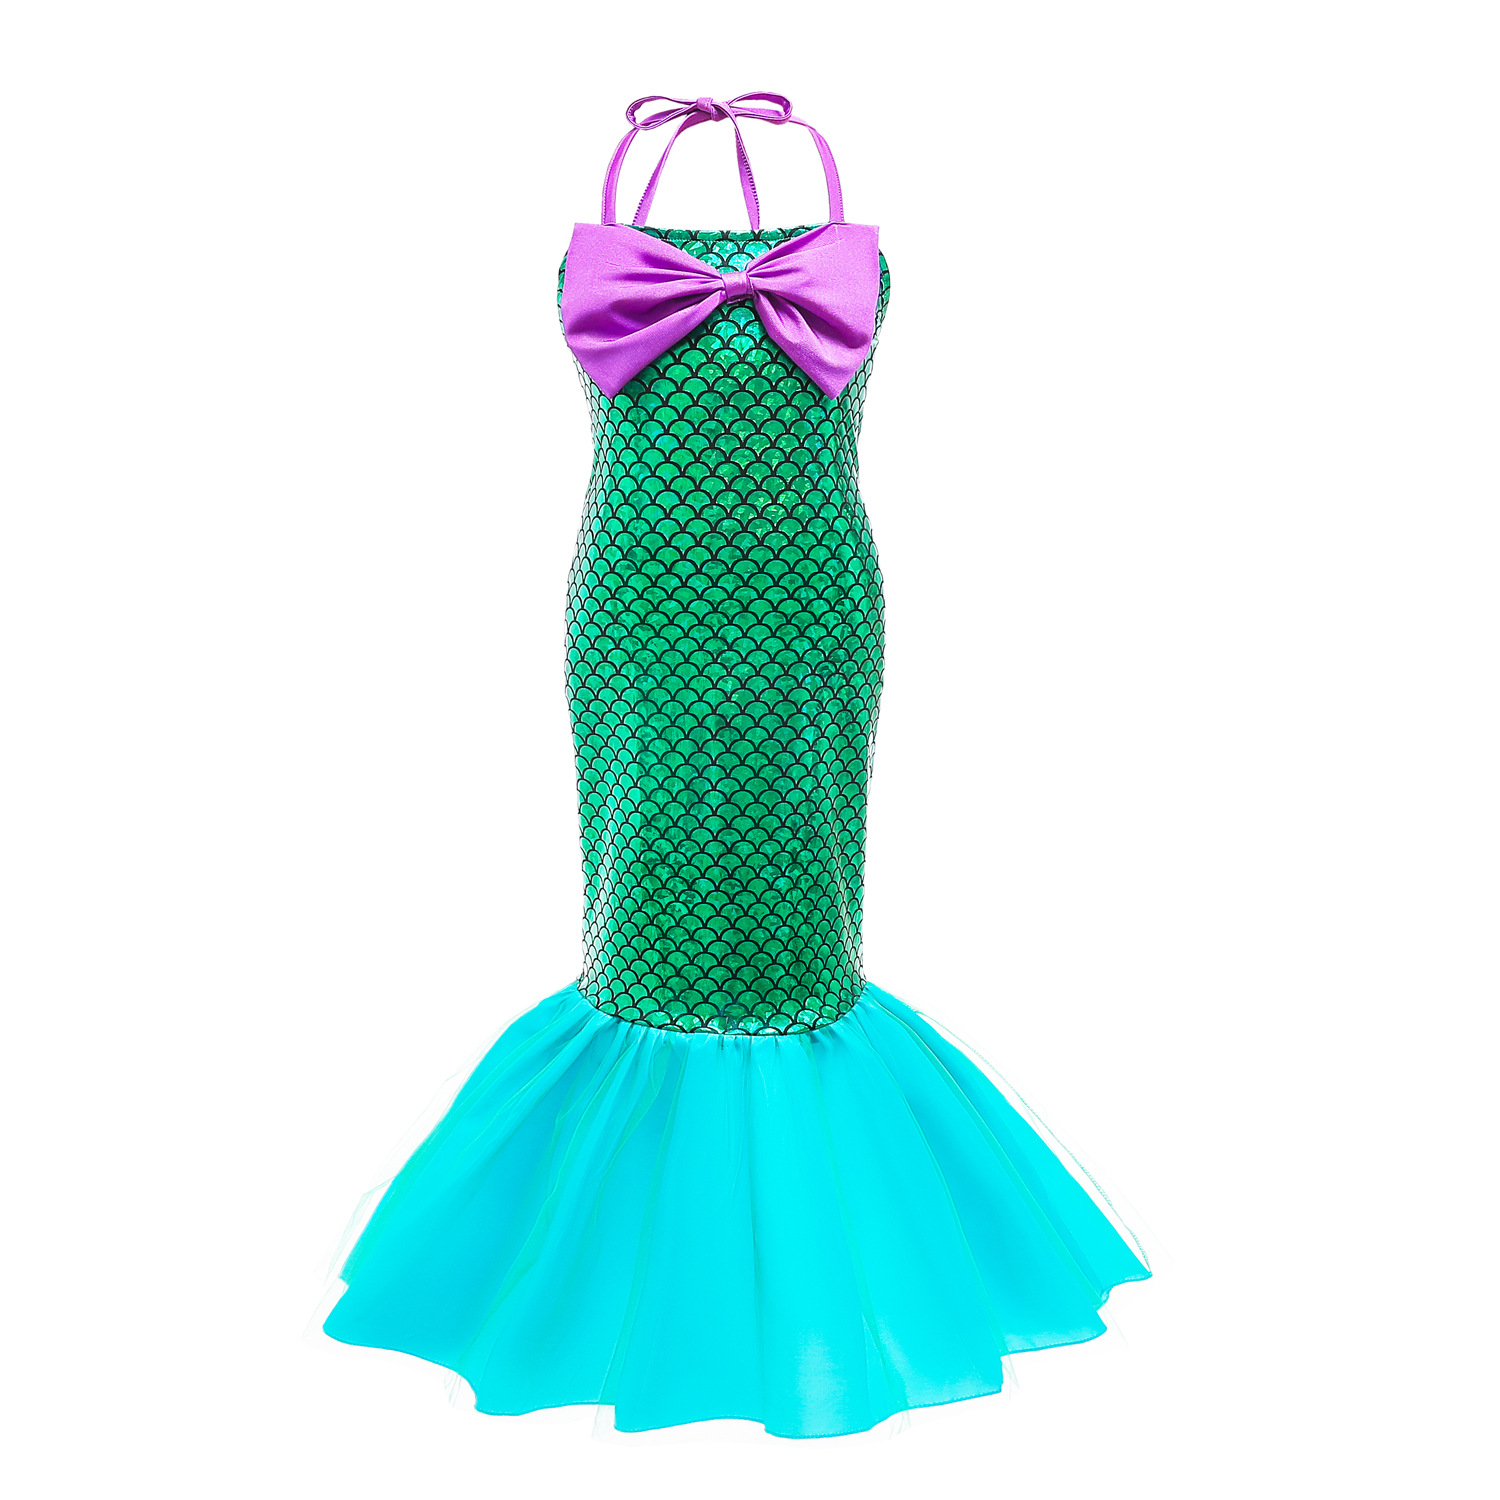 Girls Little Mermaid Princess Dress Cosplay Costumes For Kids Baby Girl Mermaid Dress Up Children Halloween Clothing